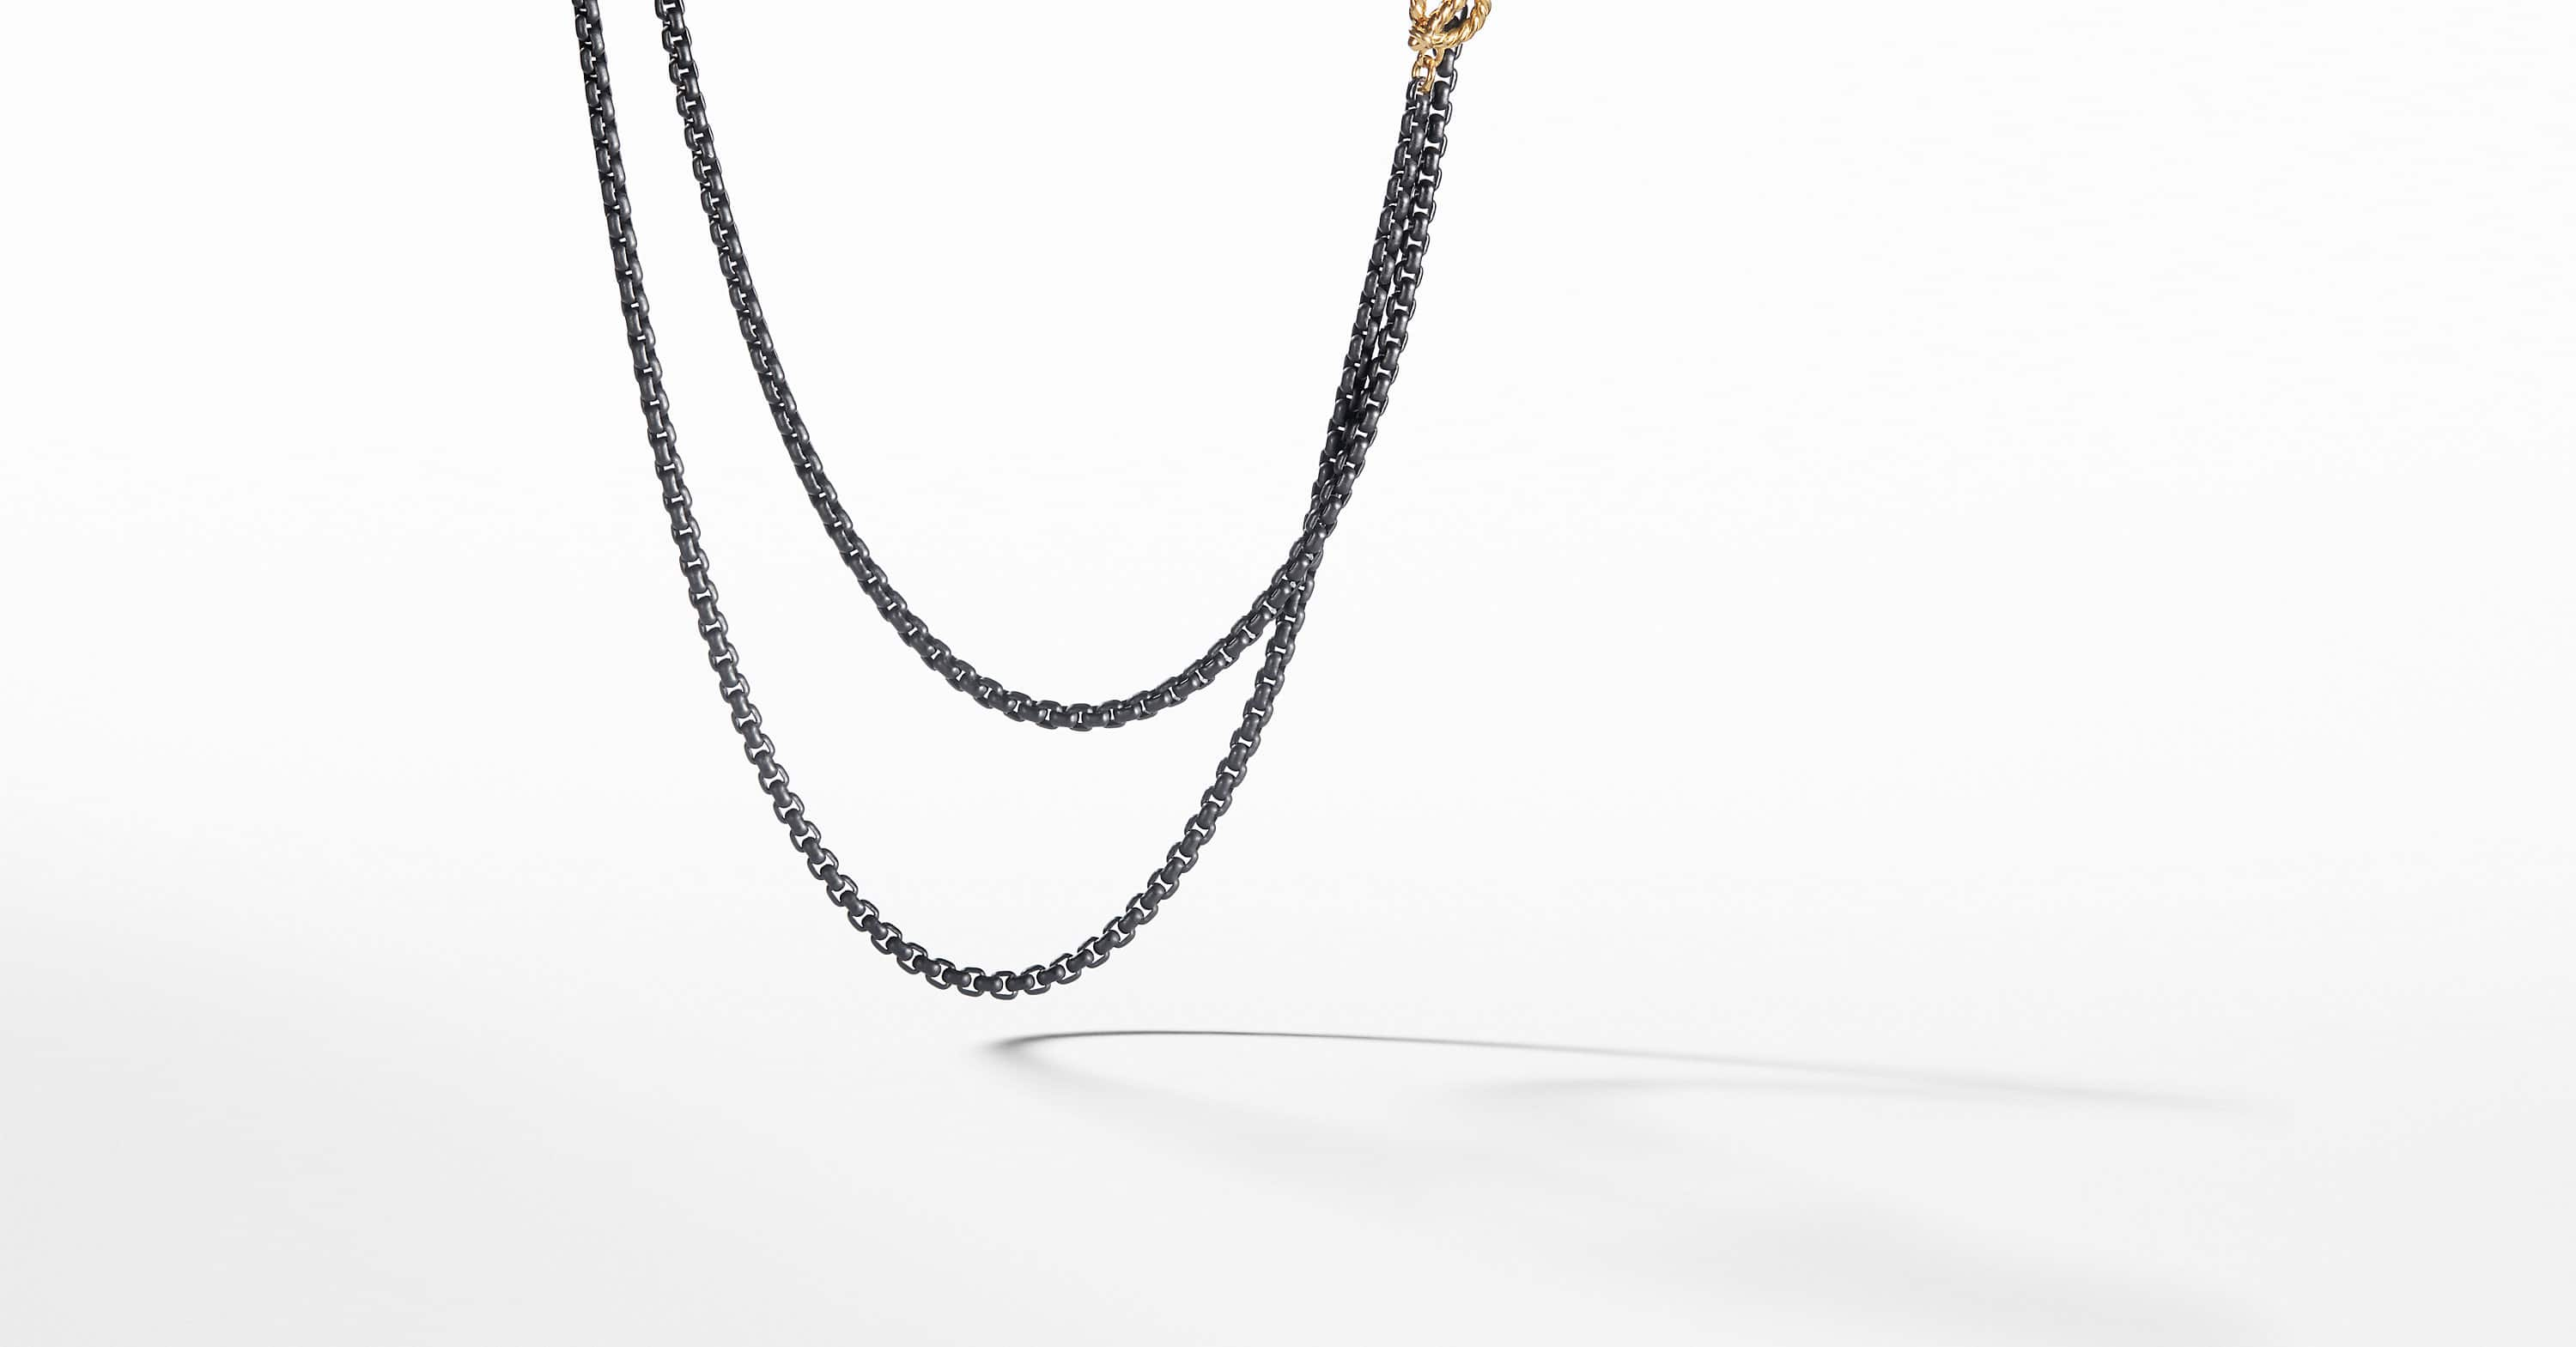 DY Bel Aire Chain Necklace with 14K Gold Accents